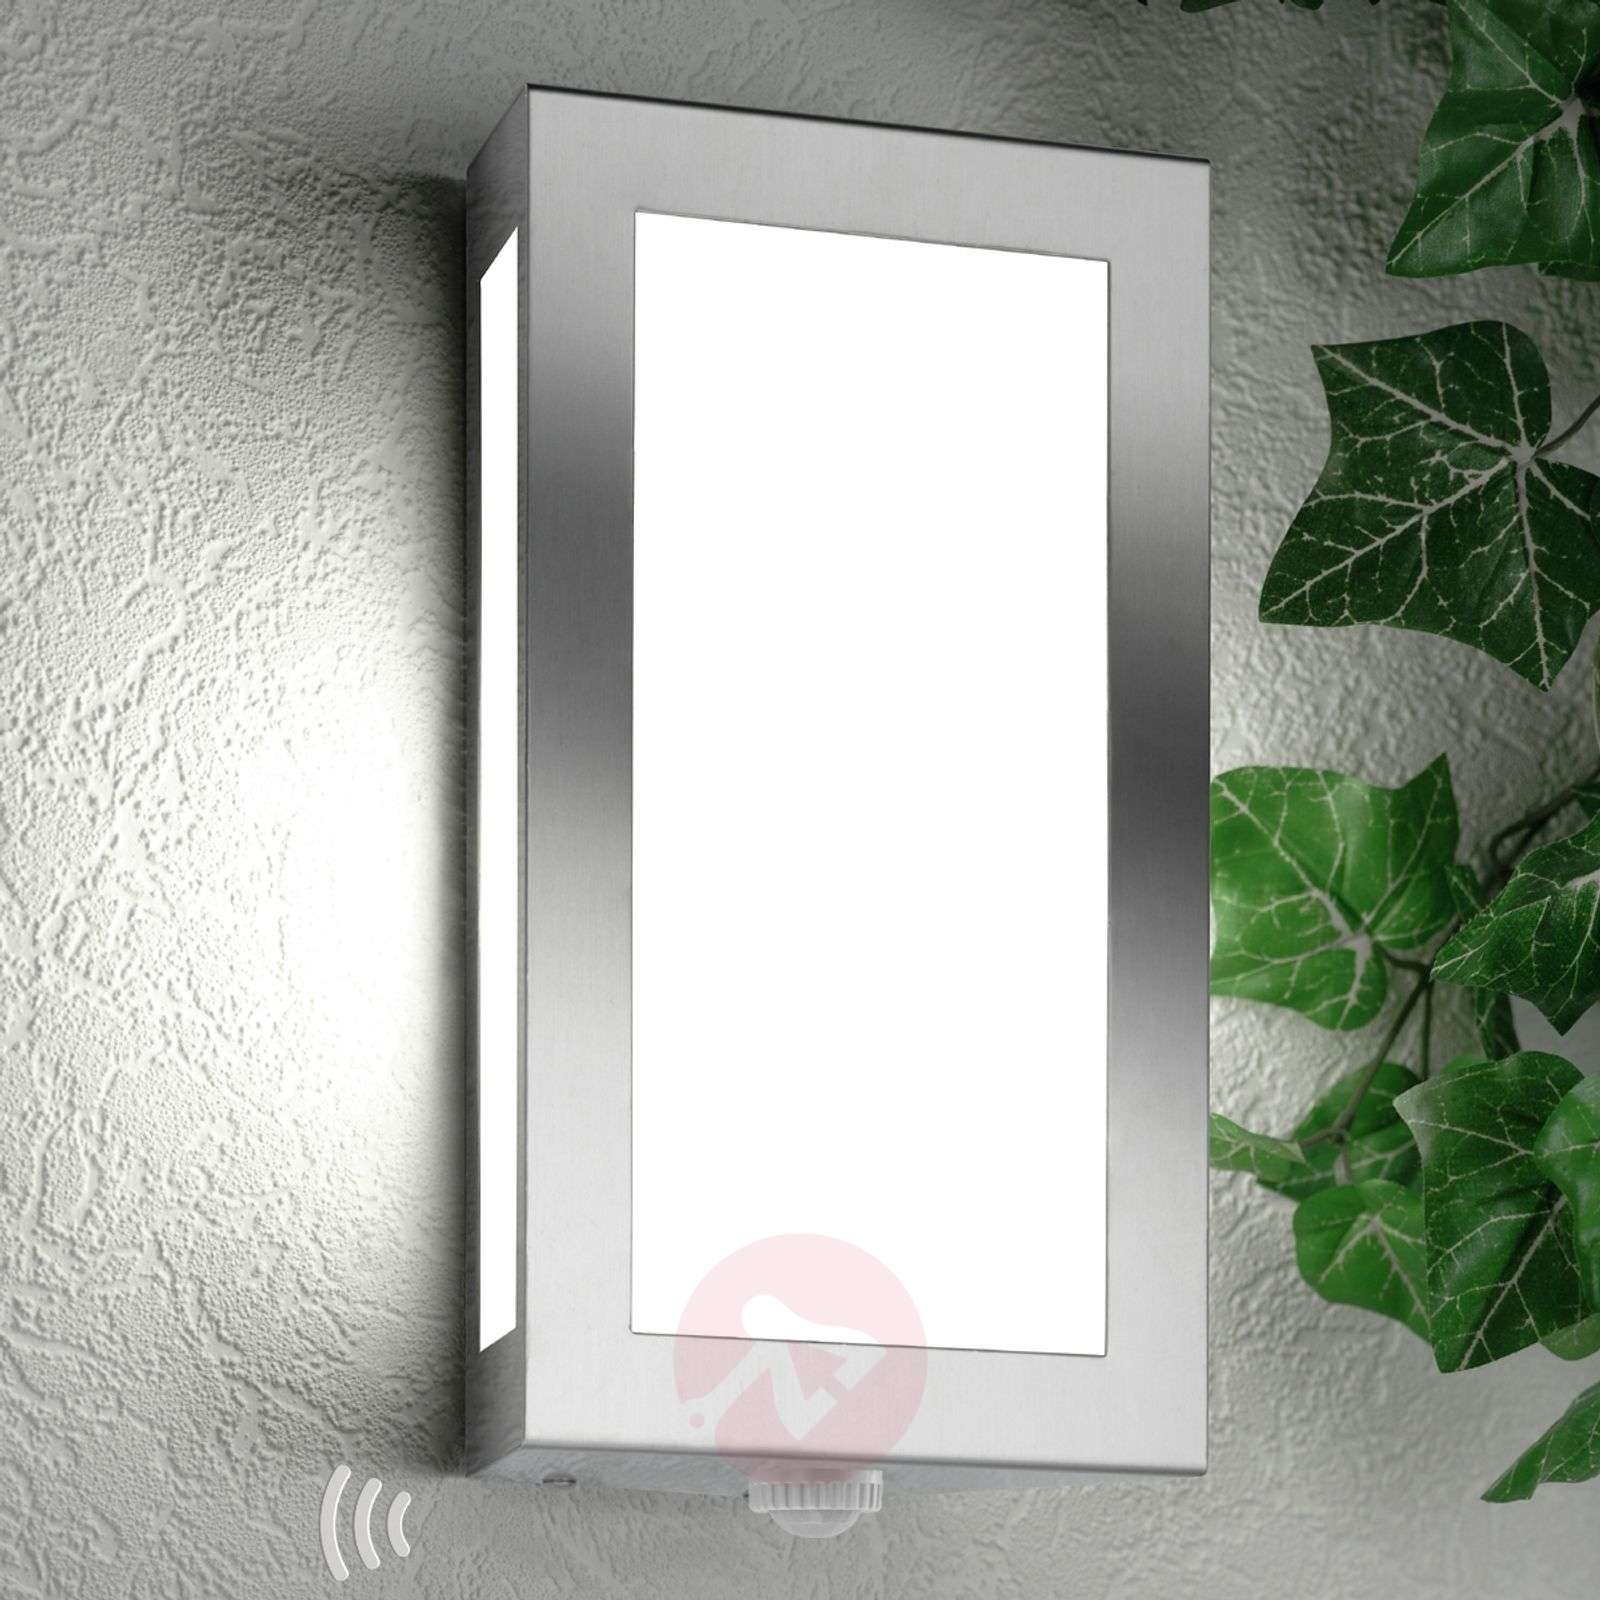 Long Rectangular External Wall Lamp-2011006X-02